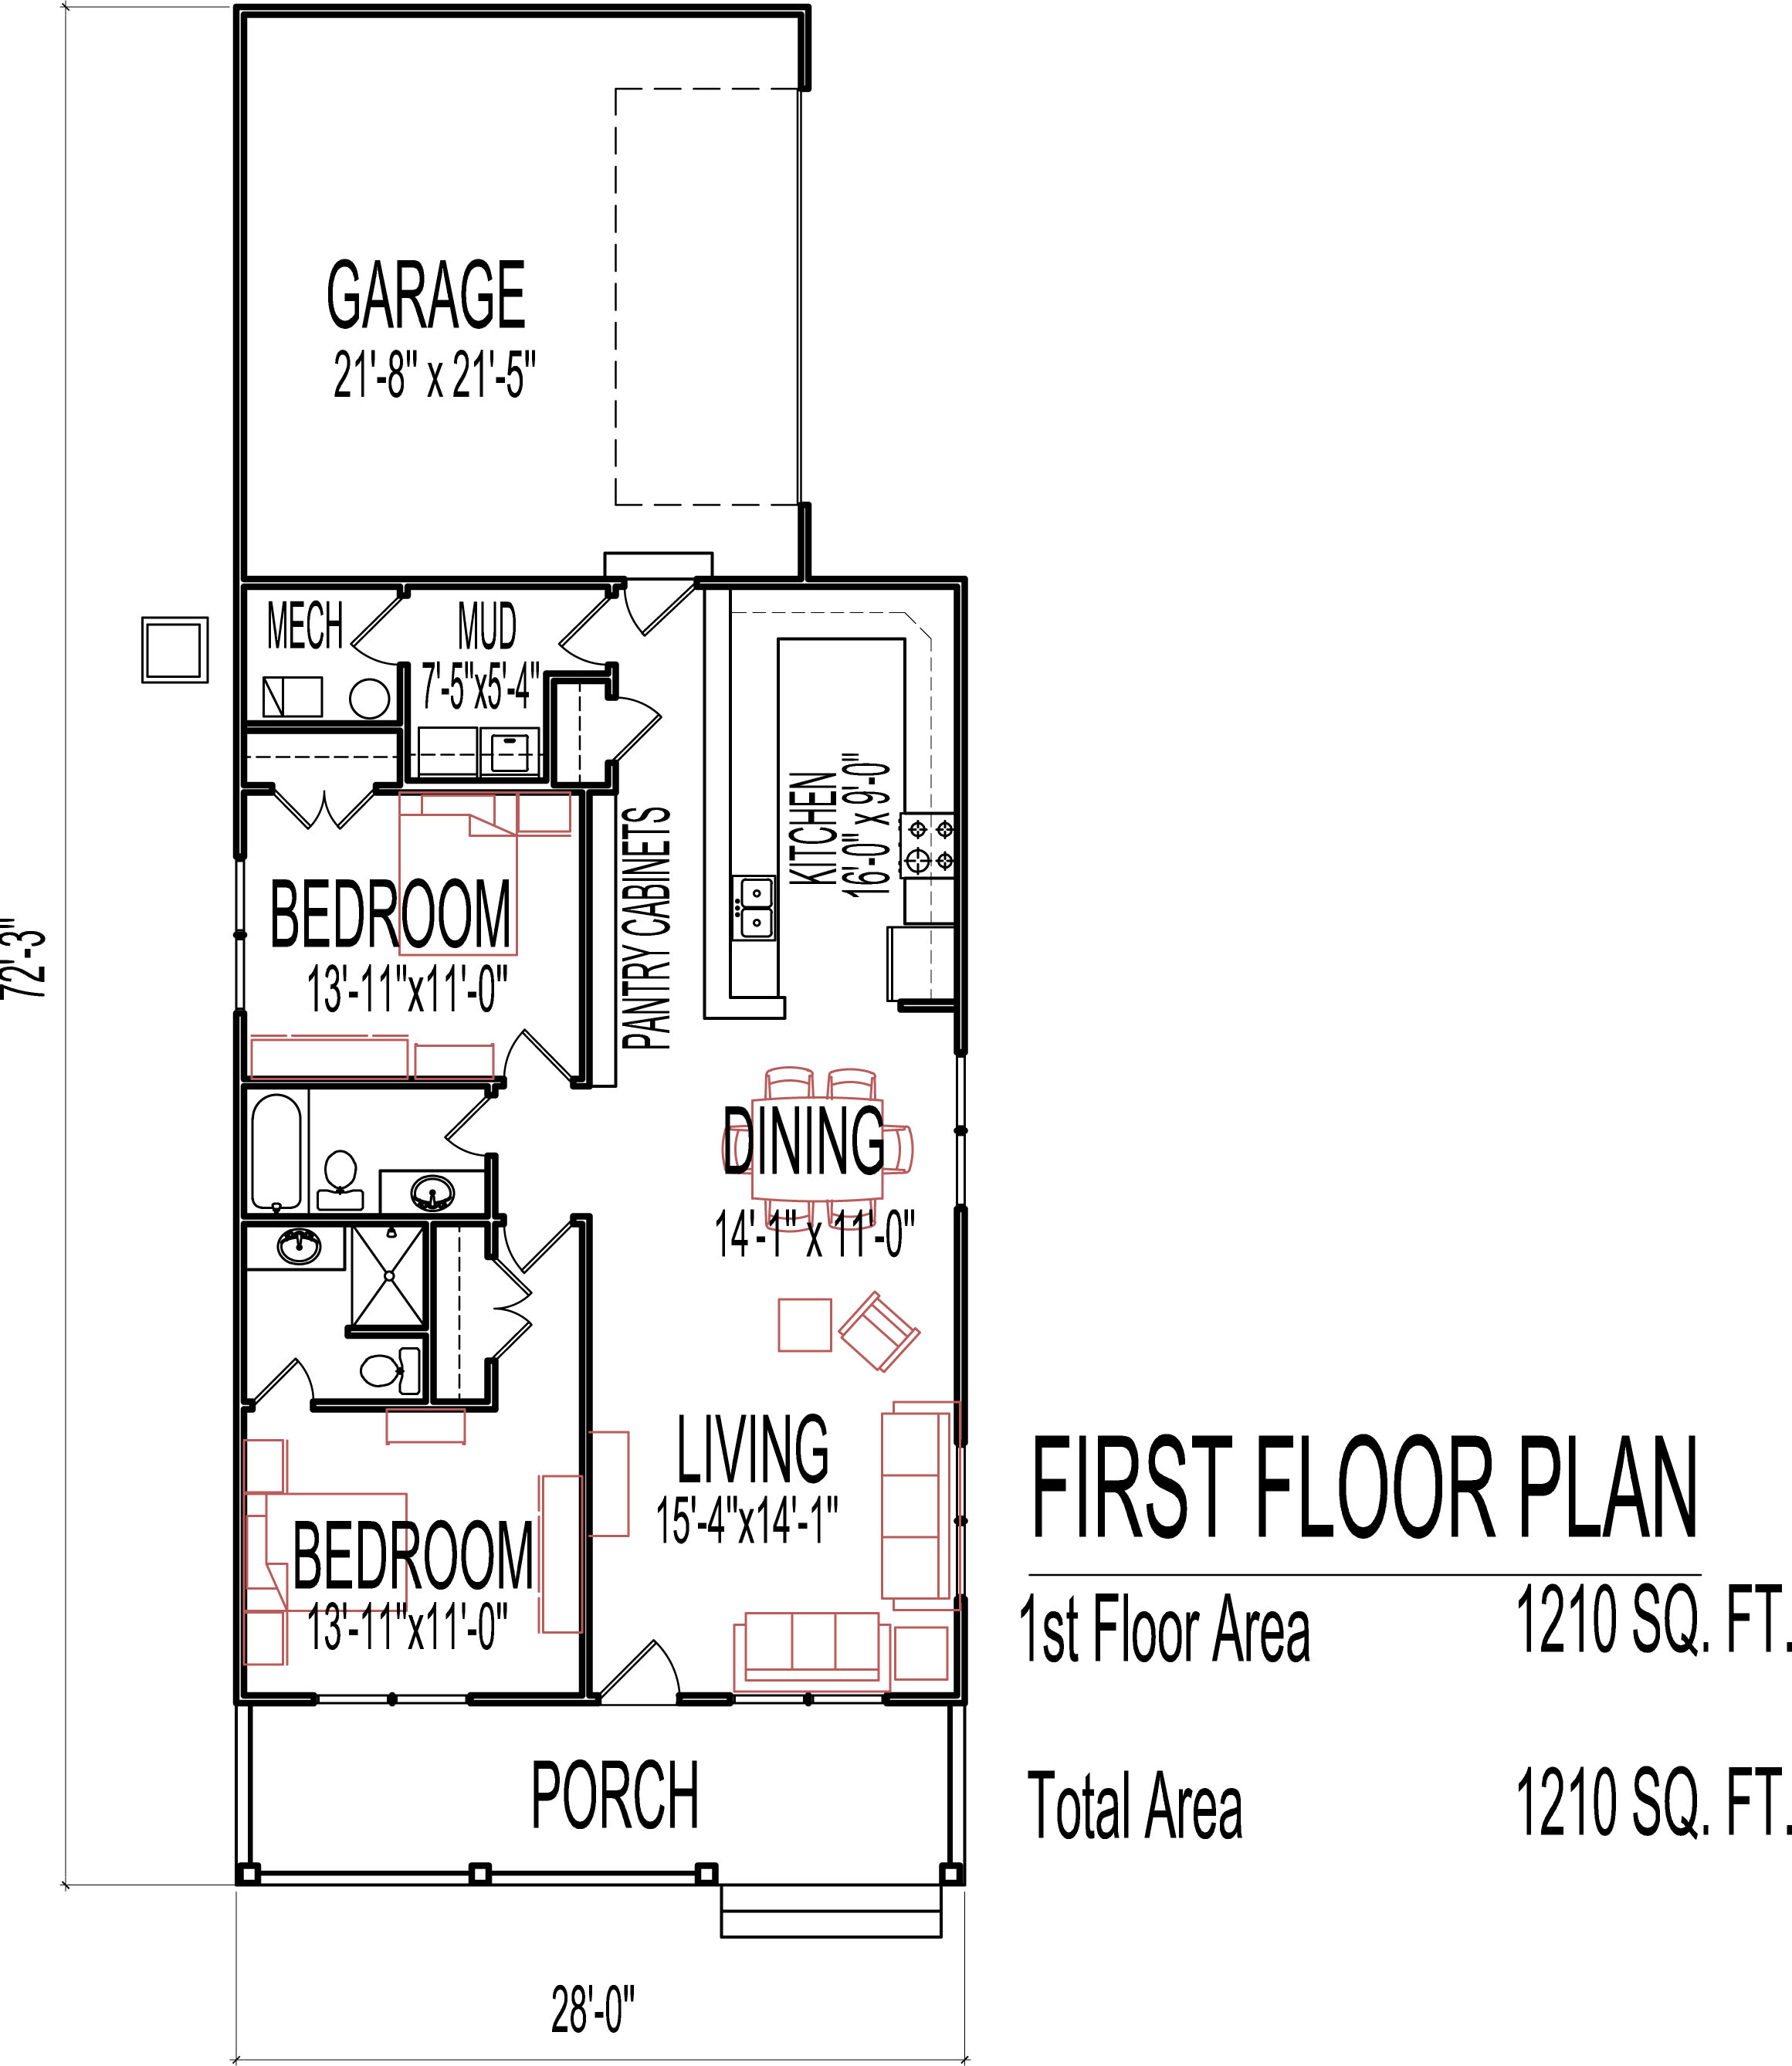 Small two bedroom house plans low cost 1200 sq ft one story small low cost economical 2 bedroom 2 bath 1200 sq ft single story house floor plans malvernweather Gallery